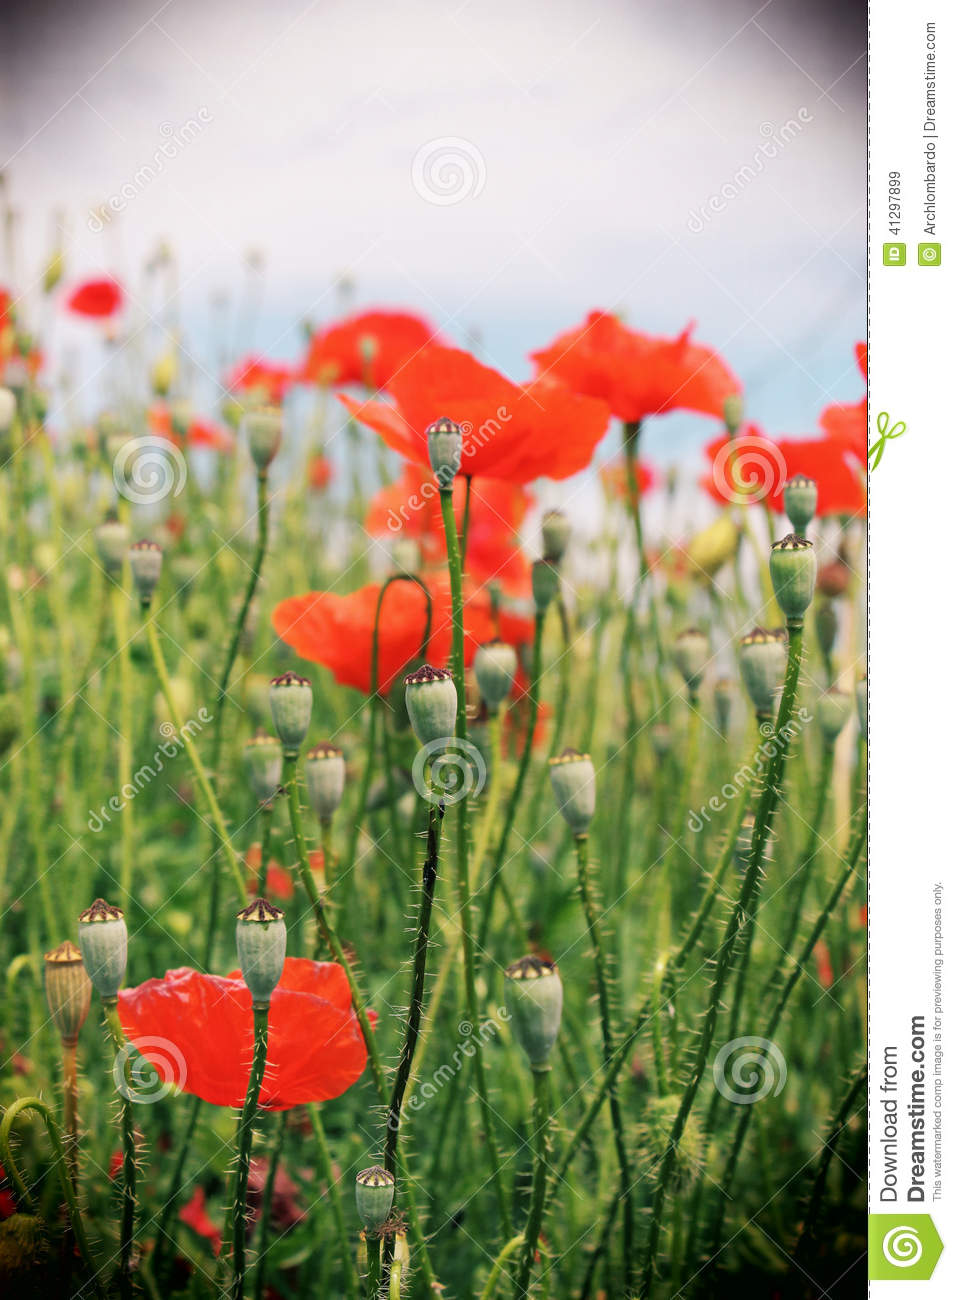 Red Poppy Flowers In A Field, Vintage Stock Photo - Image ...